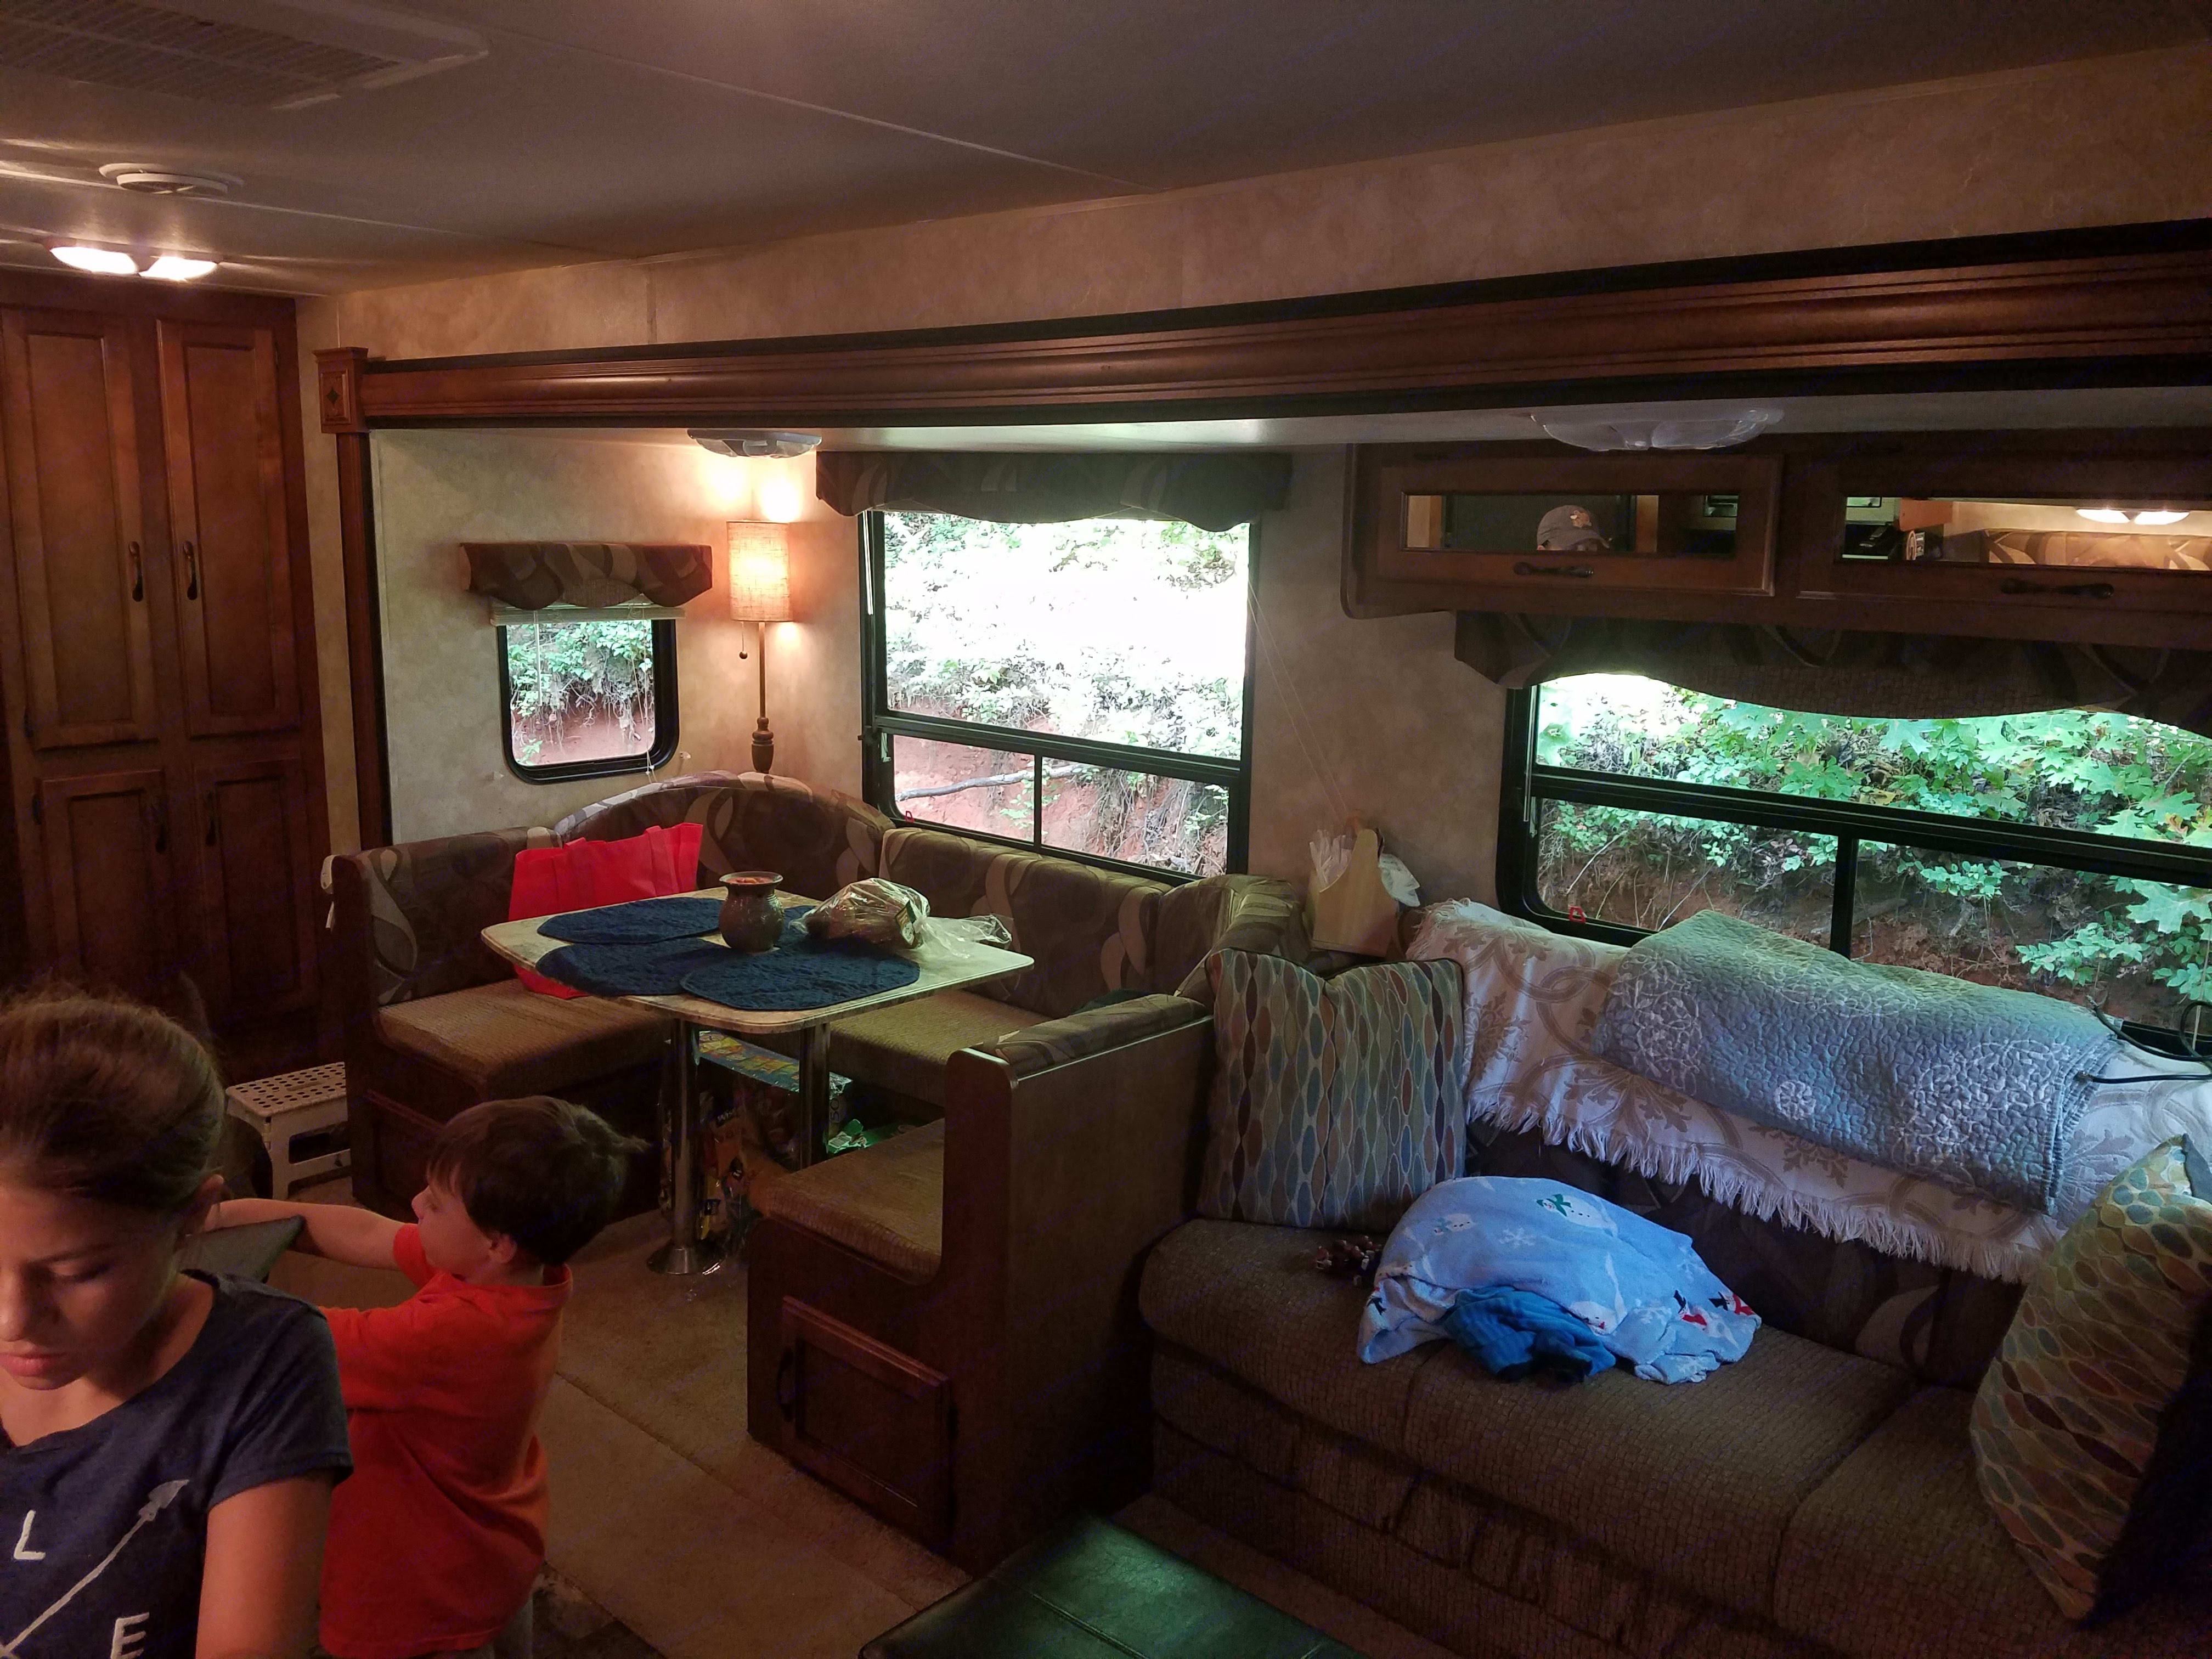 Living and dinning area with u-shaped dinning area for maximum seating. Both the living room couch and the dinner table turn into beds. The couch sleeps 2, as does the dinner table.. Coachmen Catalina Santara 2014